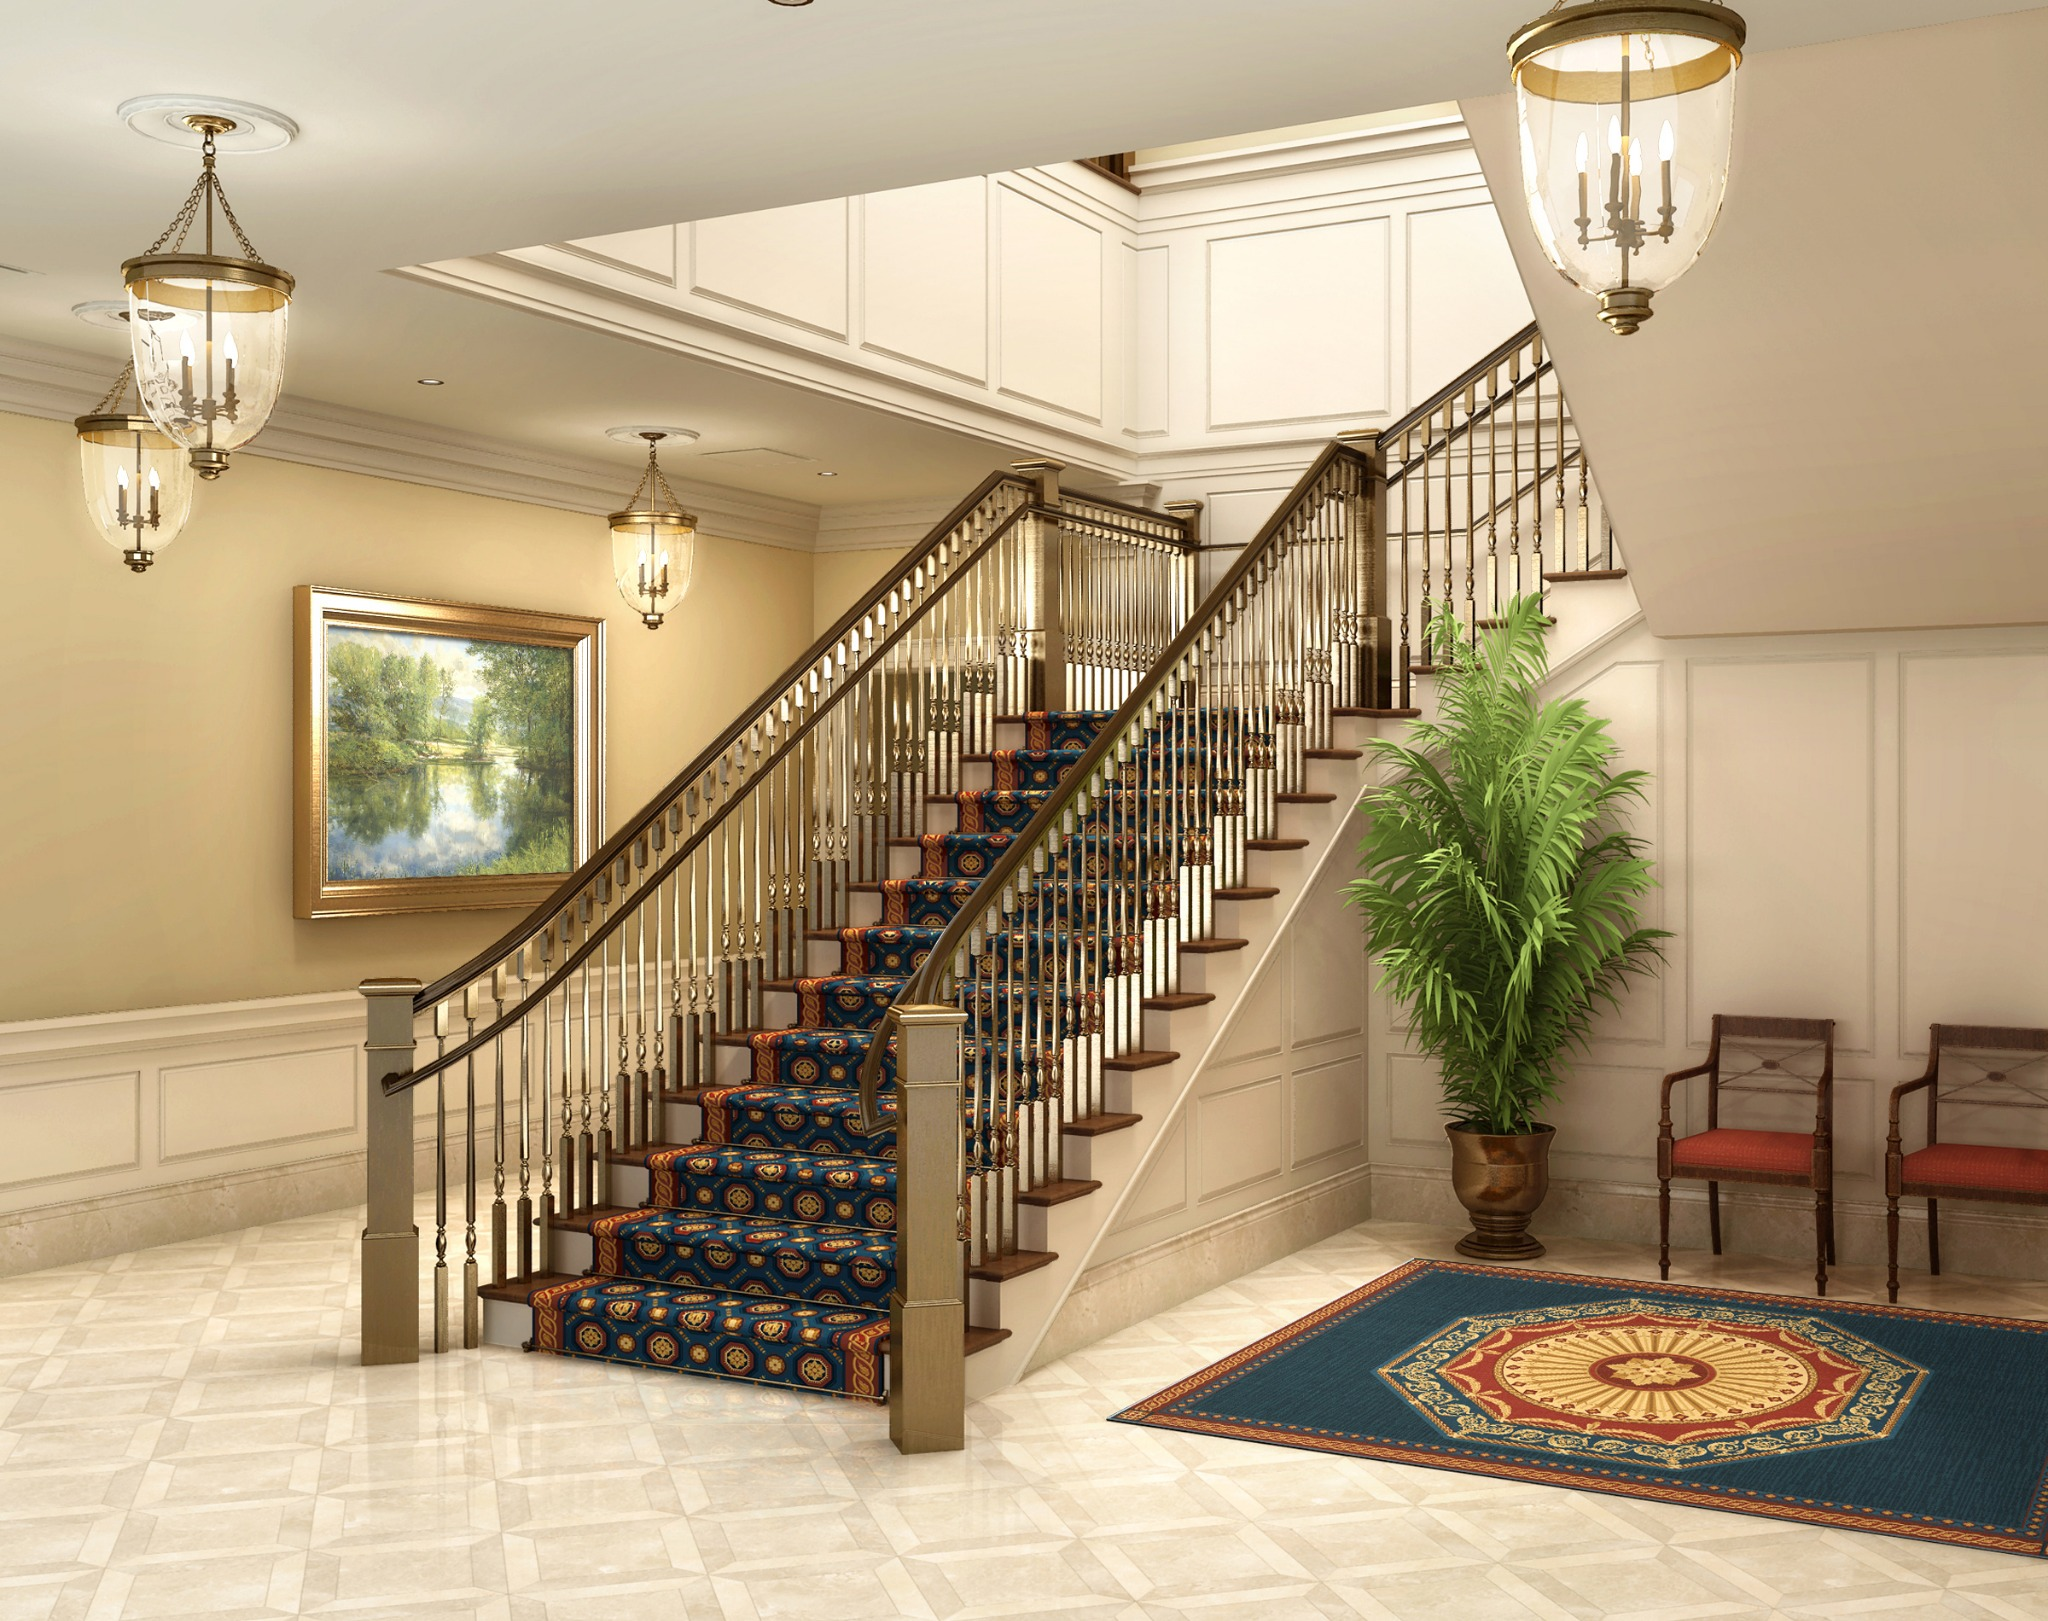 Rendering of the grand staircase in the Richmond Virginia Temple